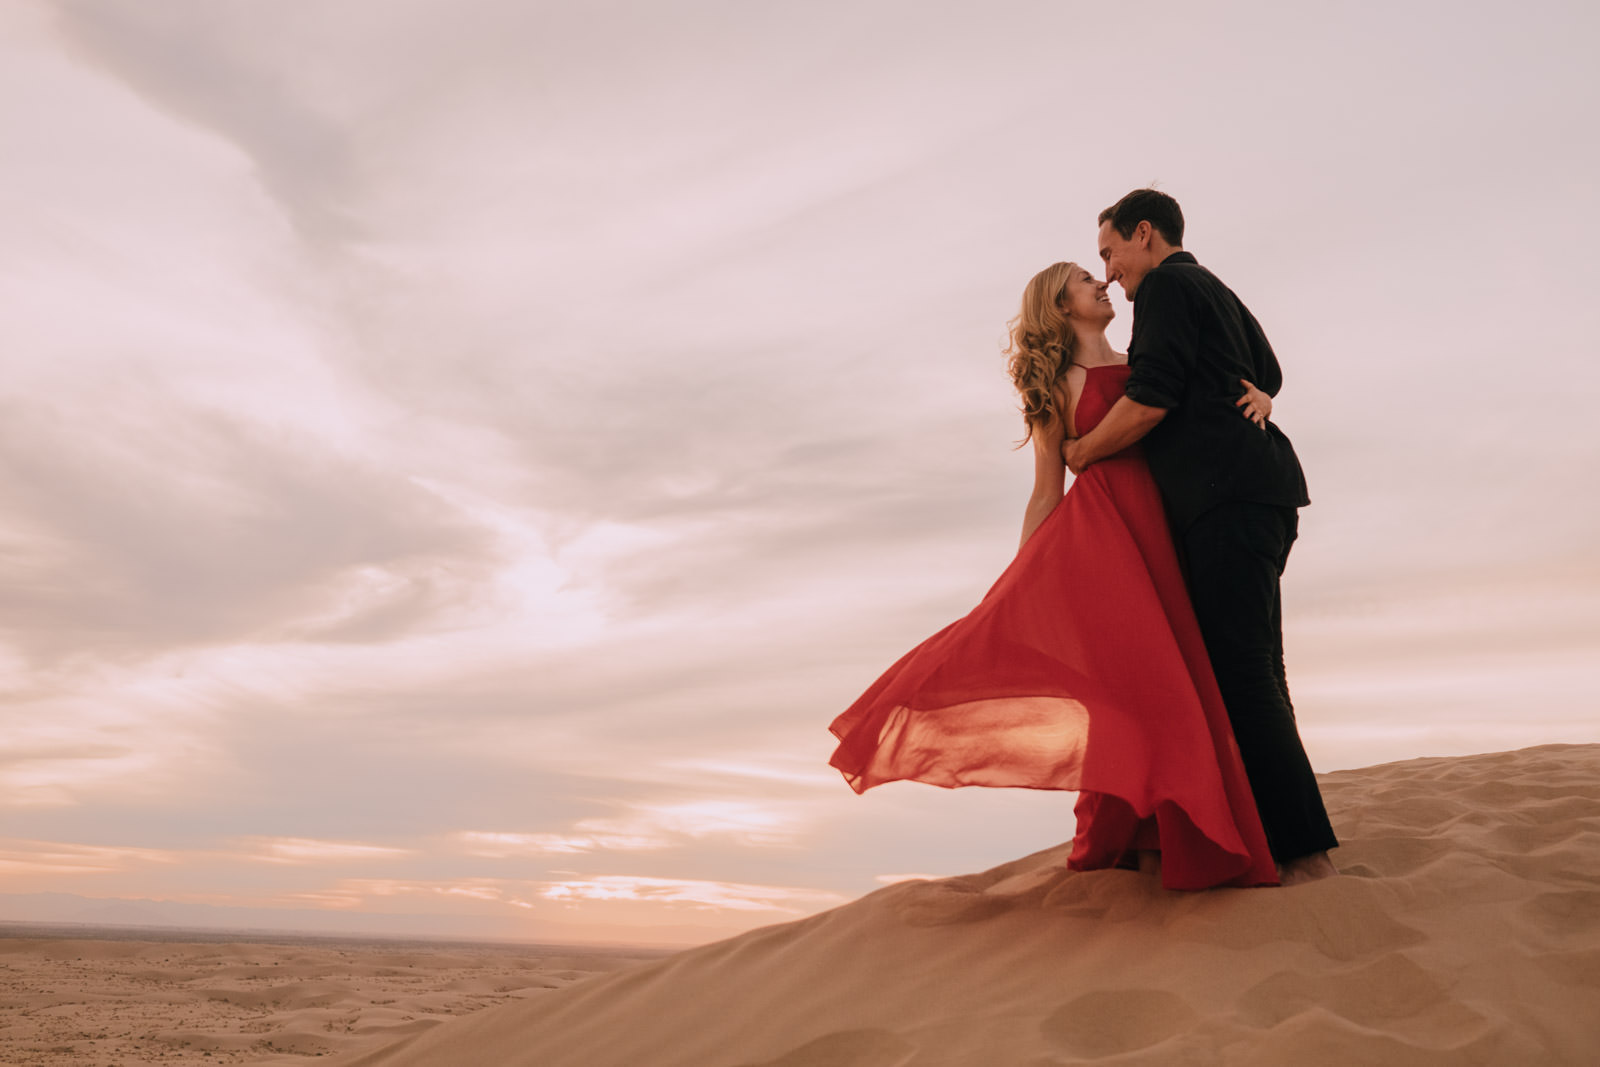 khoa photography glamis sand dune engagement